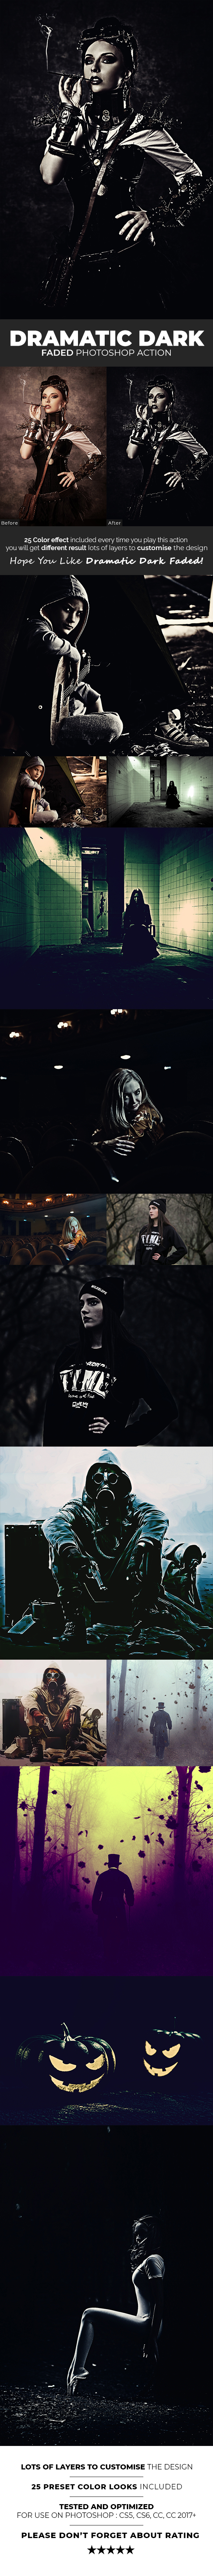 Dramatic Dark Faded Photoshop Action - Photo Effects Actions